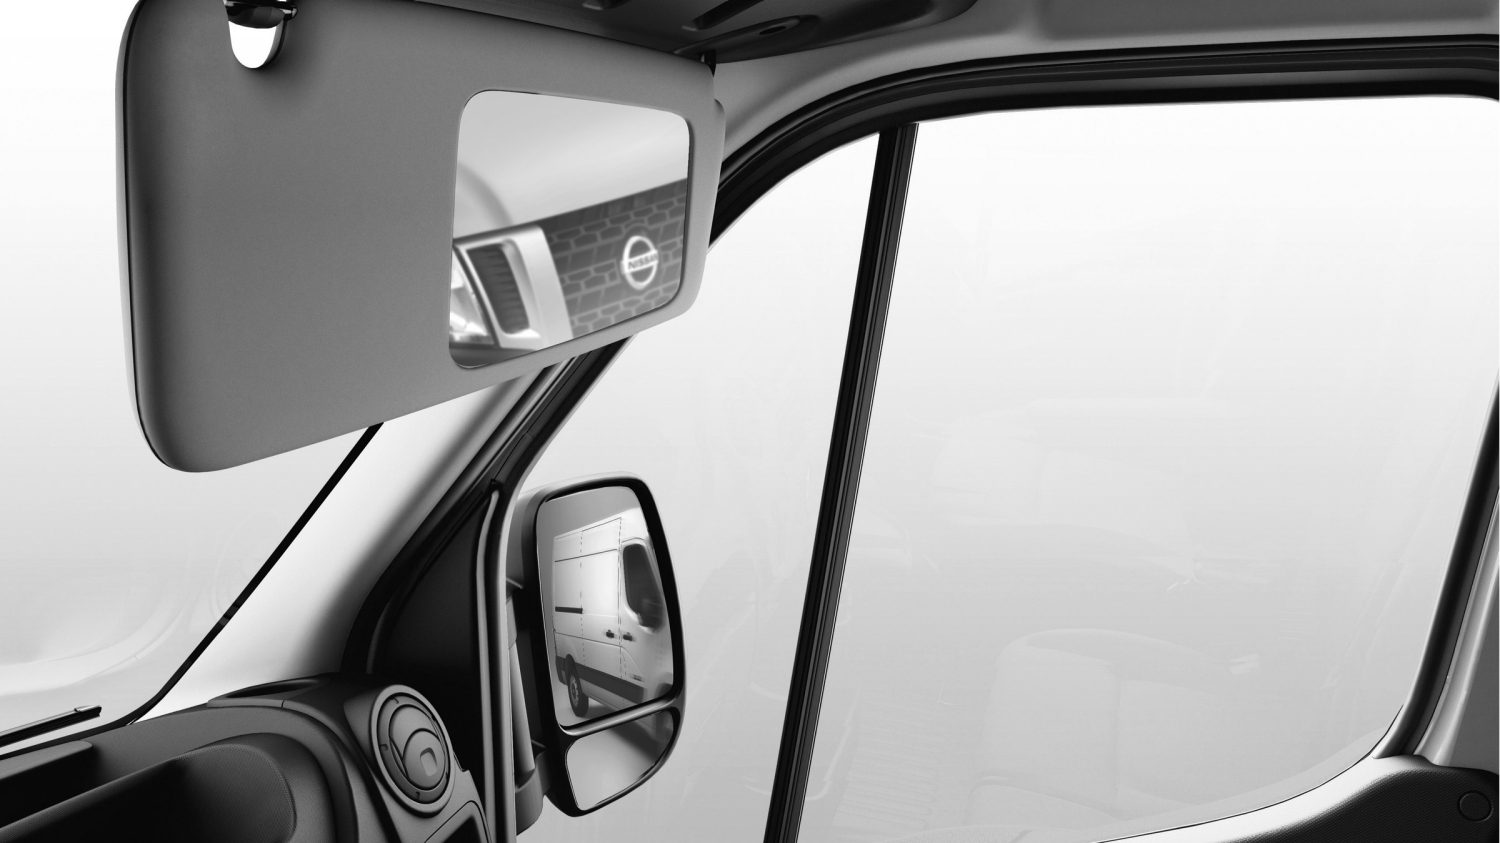 Nissan NV400 - Wide mirror on passenger's sunvisor view